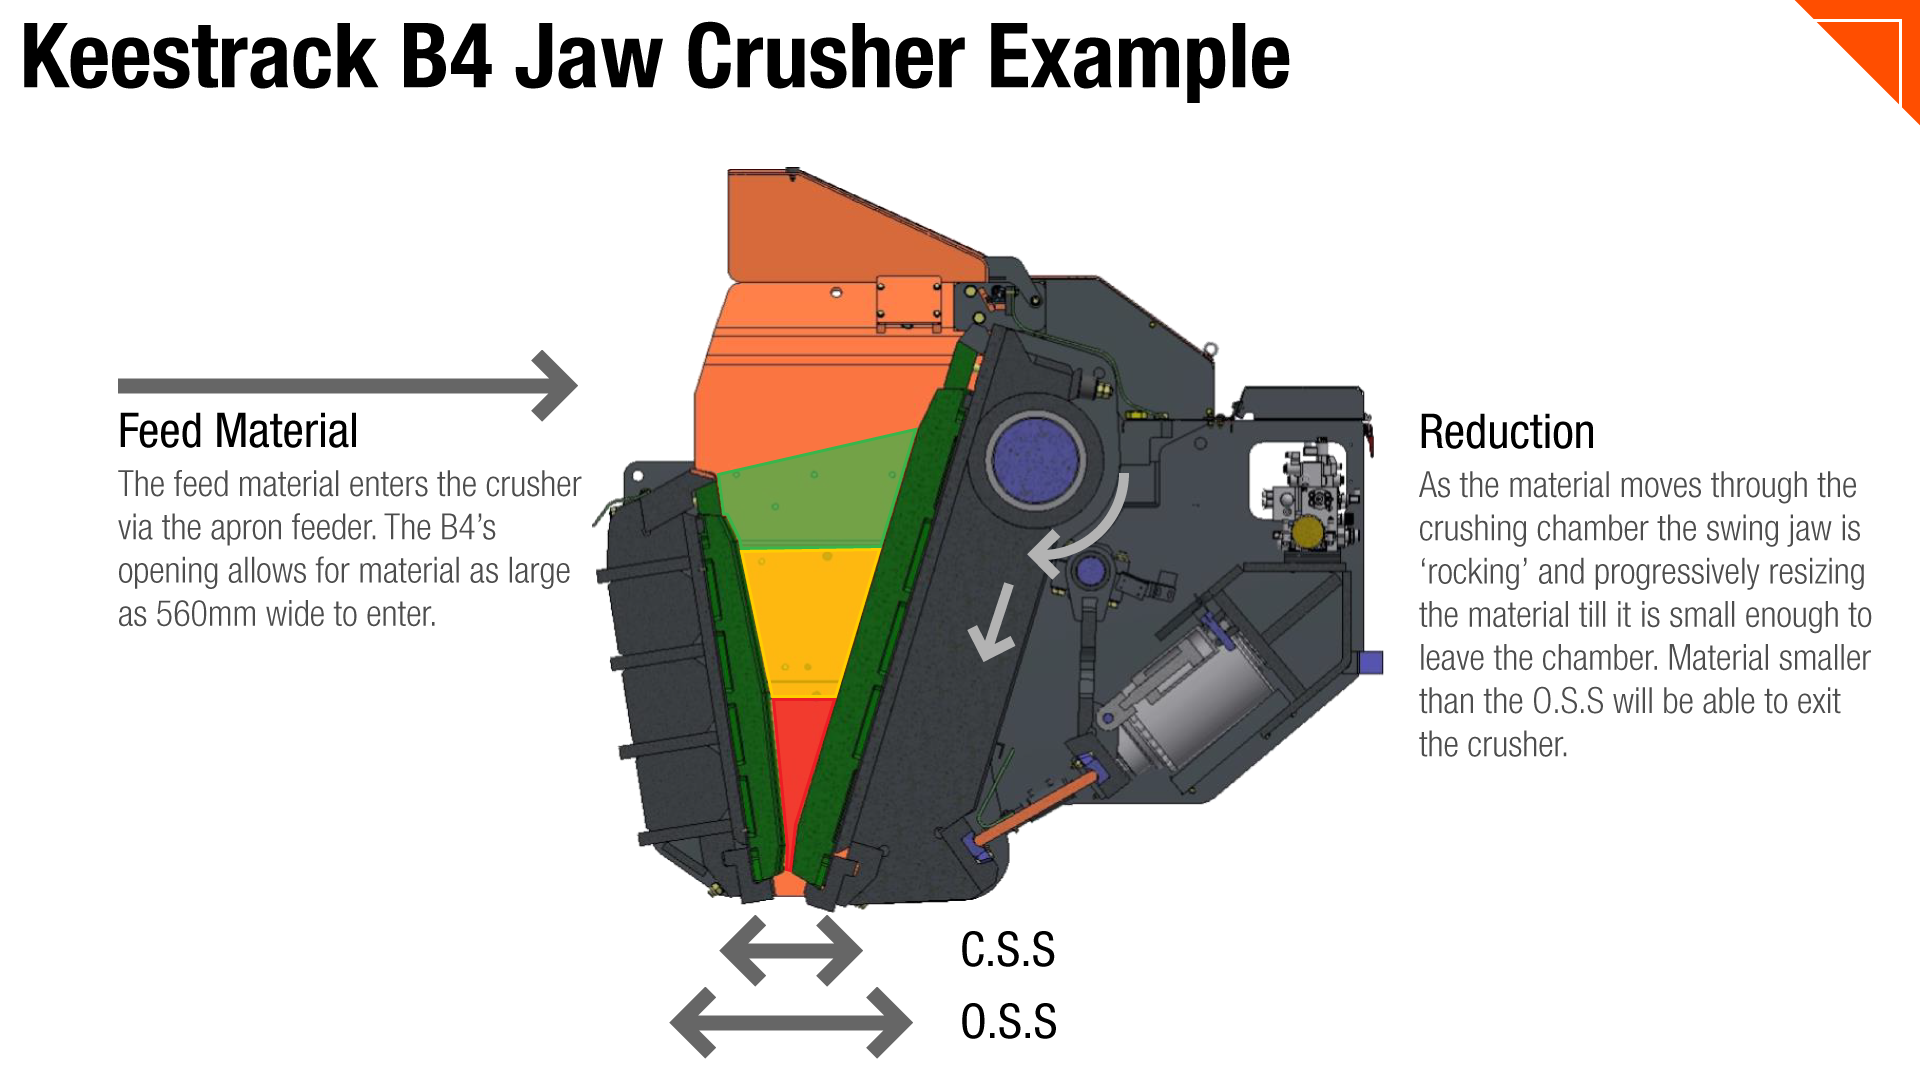 Keestrack Jaw Crusher Crushing Example